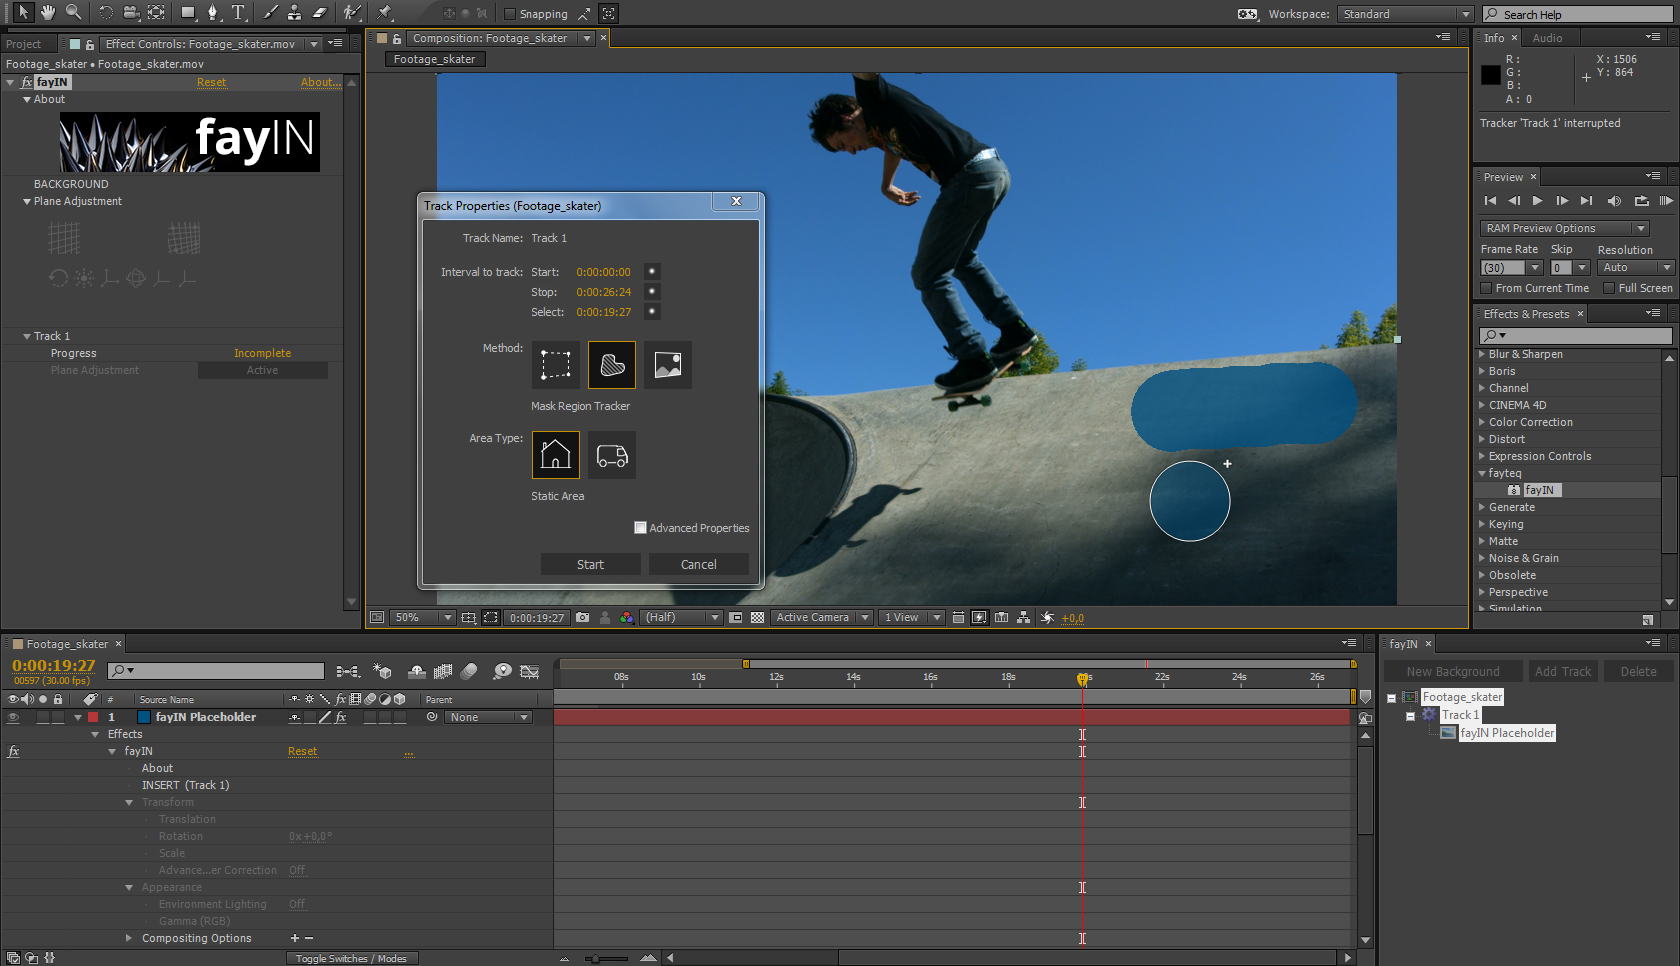 fayIN  is Integrated within Adobe After Effects